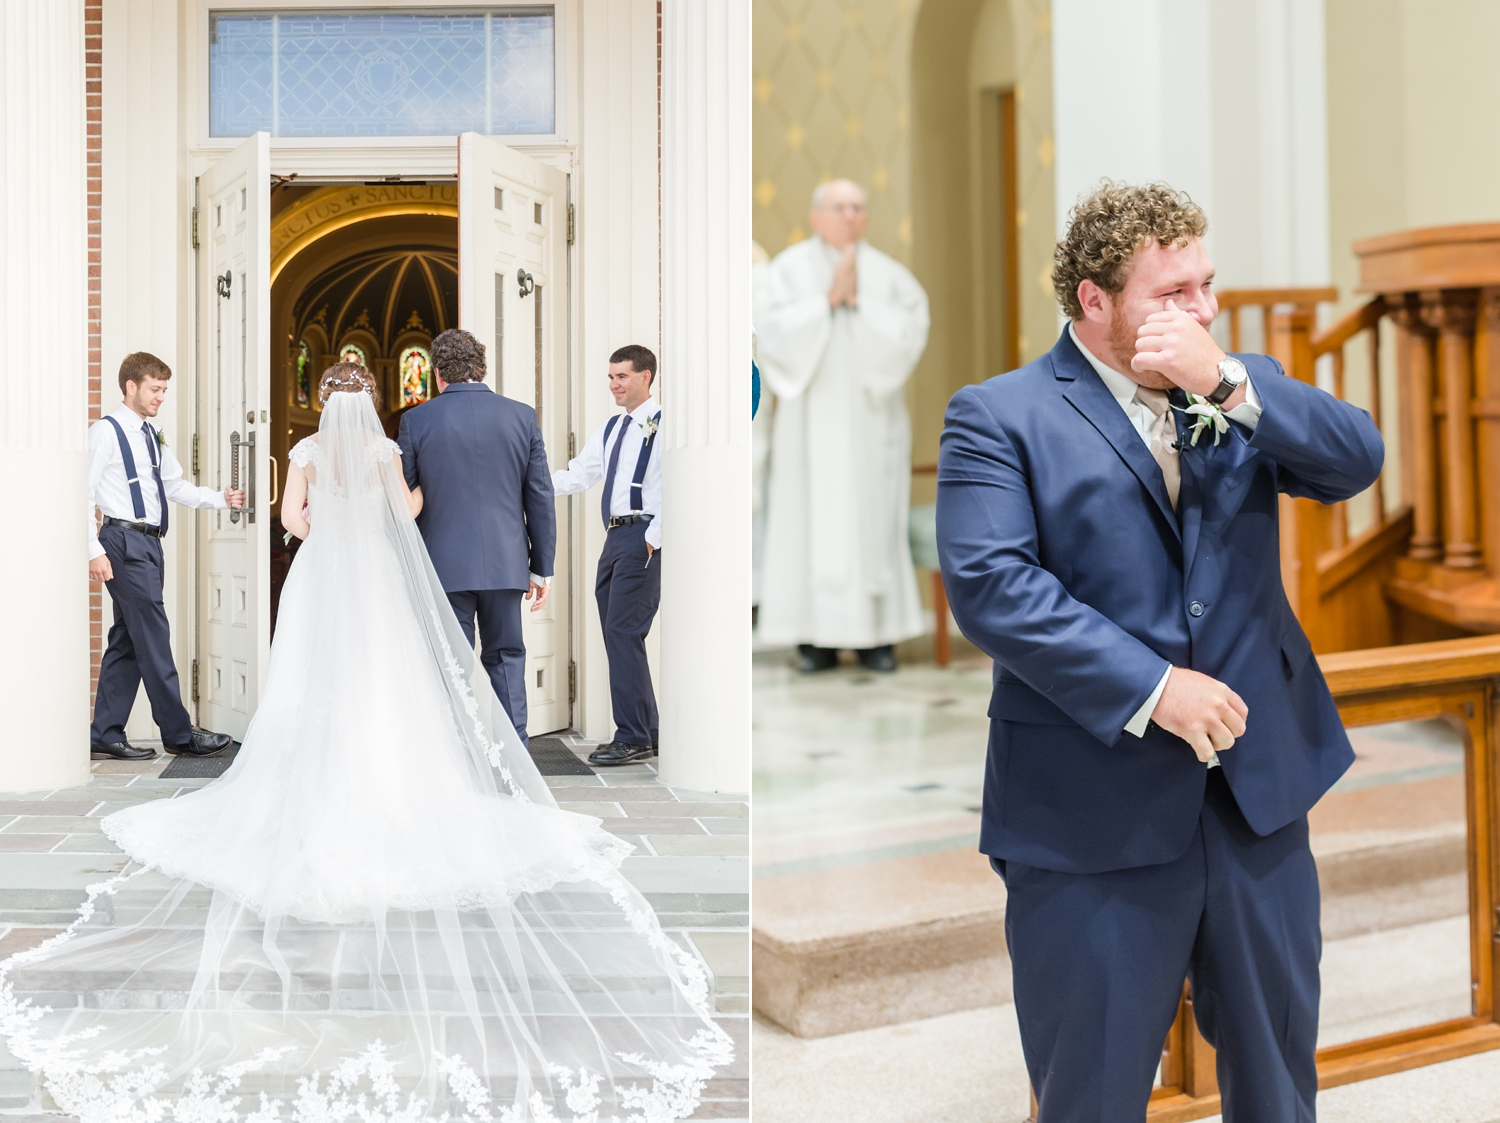 First Look's don't ruin that first sight of your bride when she walks down the aisle! I love this so much.